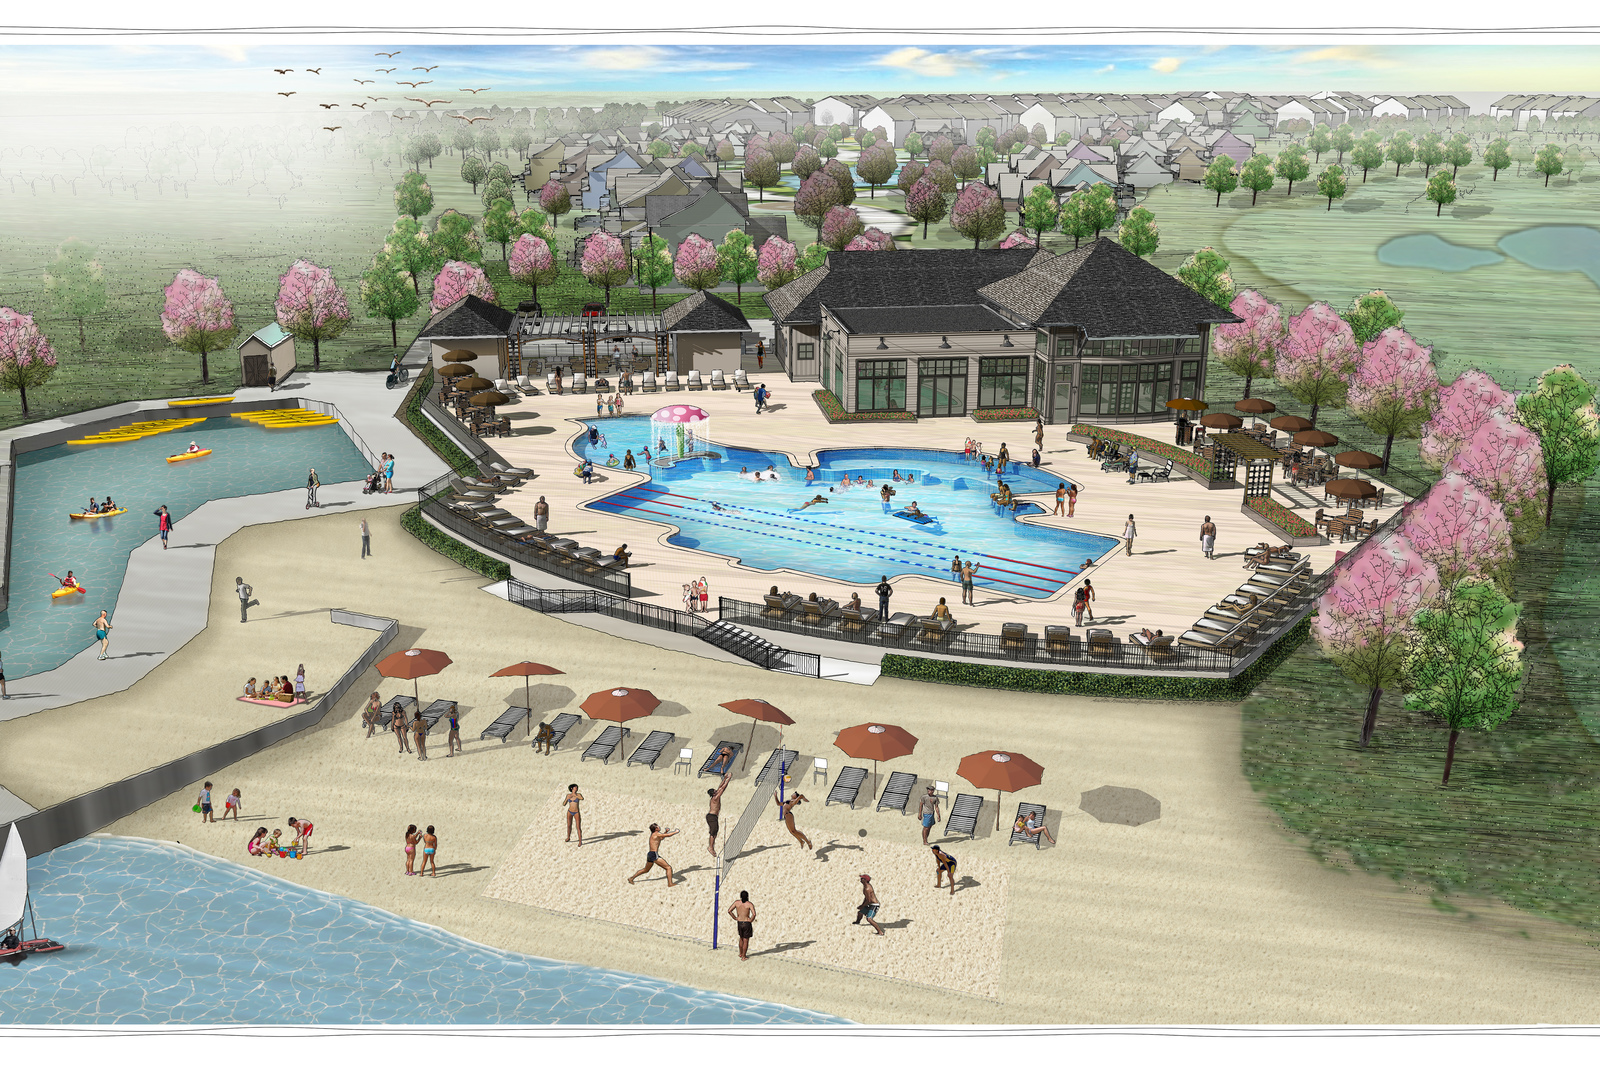 Enjoy the many amenities available at the community clubhouse, enjoy the pool or private beach, and take in stunning views of the Little Assawoman Bay